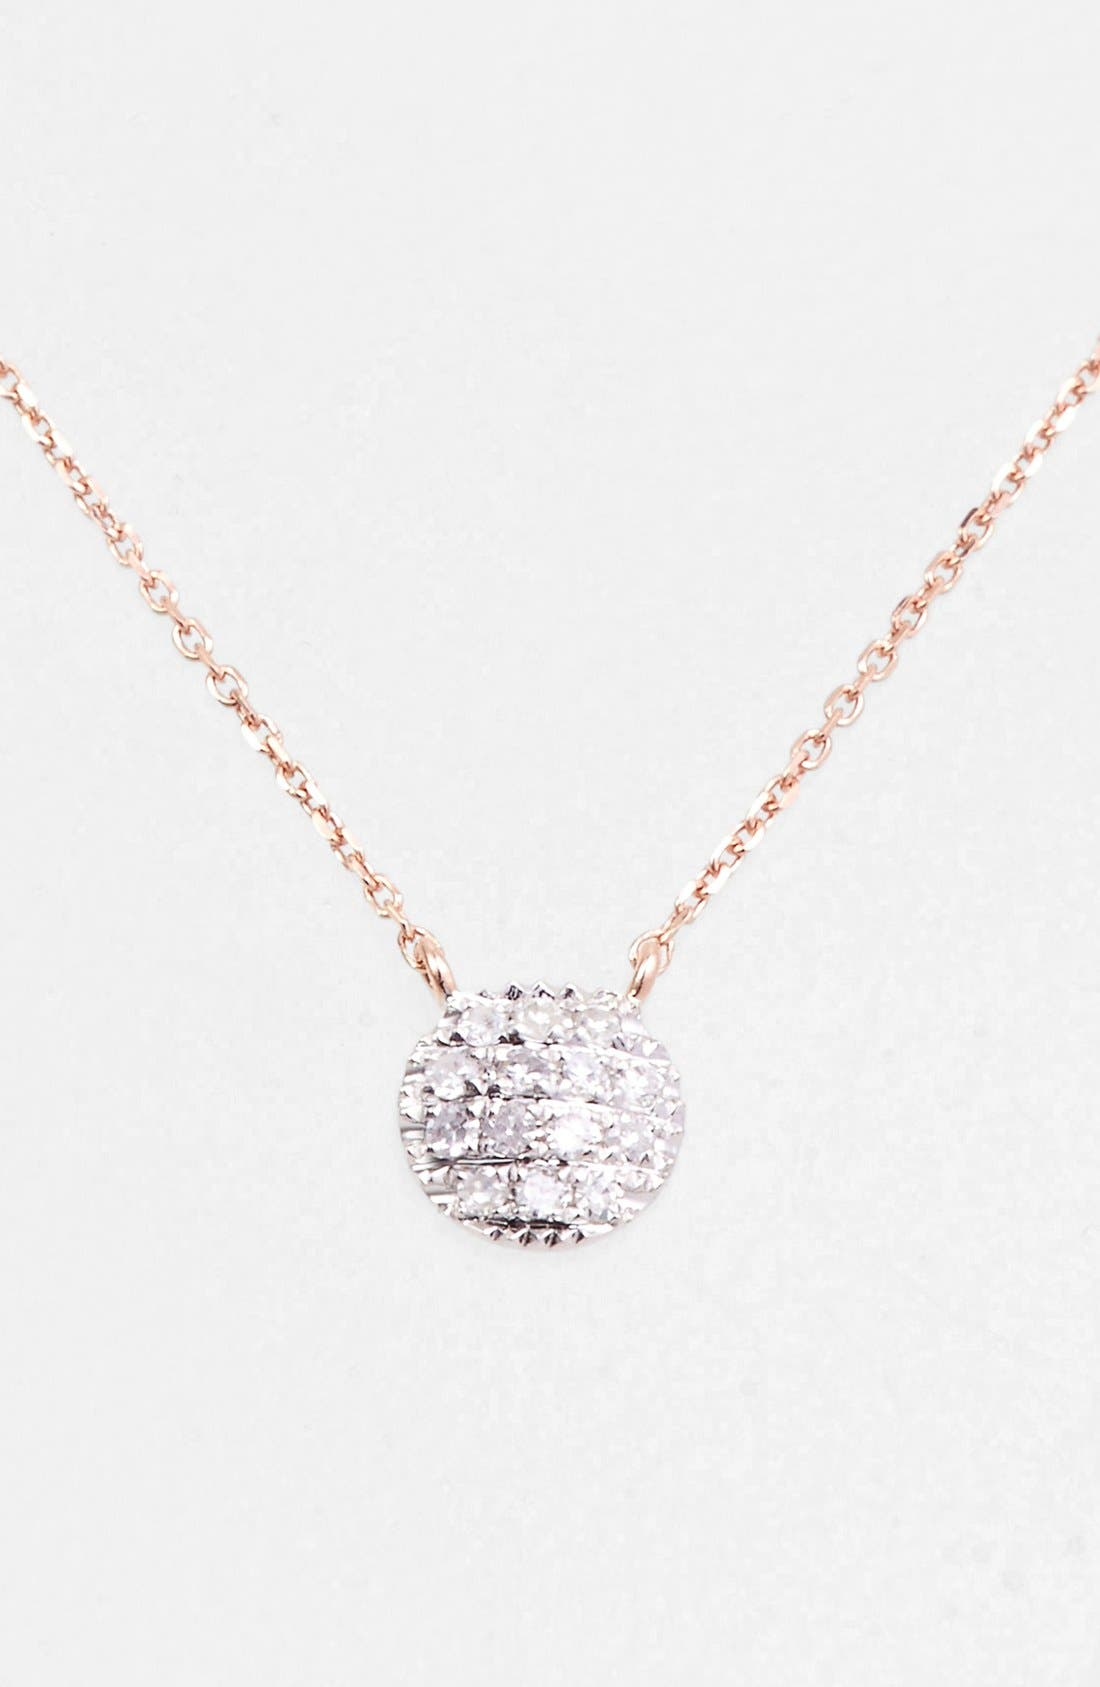 necklaces for petites